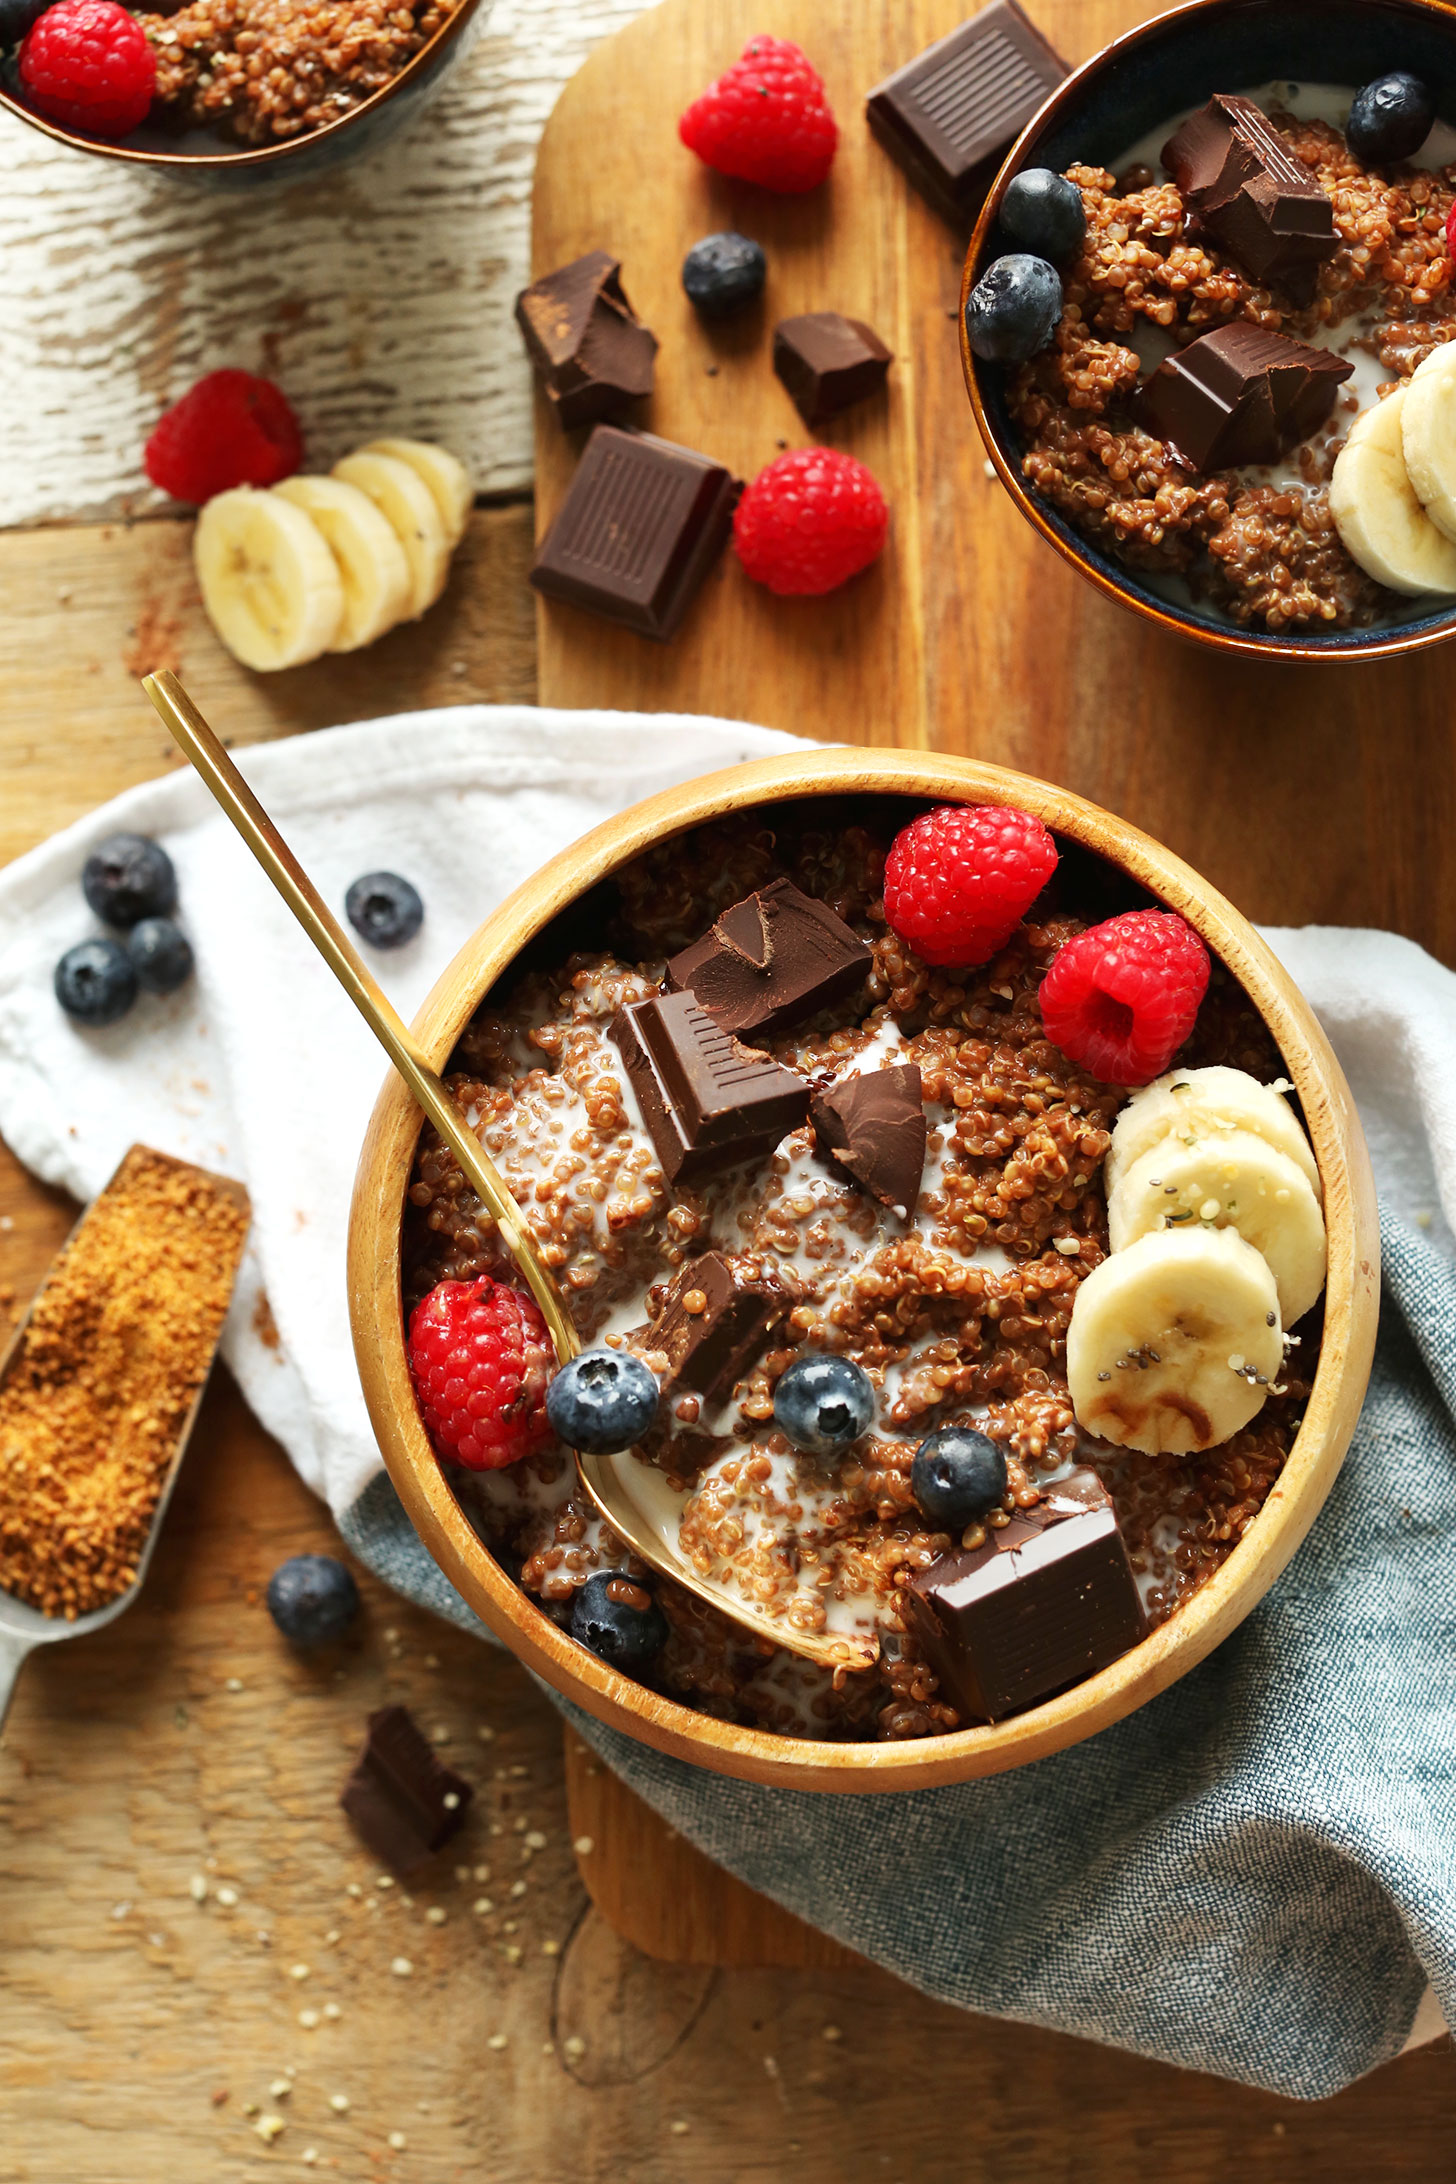 7-Ingredient-DARK-CHOCOLATE-Quinoa-Breakfast-Bowl-Full-of-antioxidants-fiber-and-protein-vegan-glutenfree-quinoa-breakfast.jpg